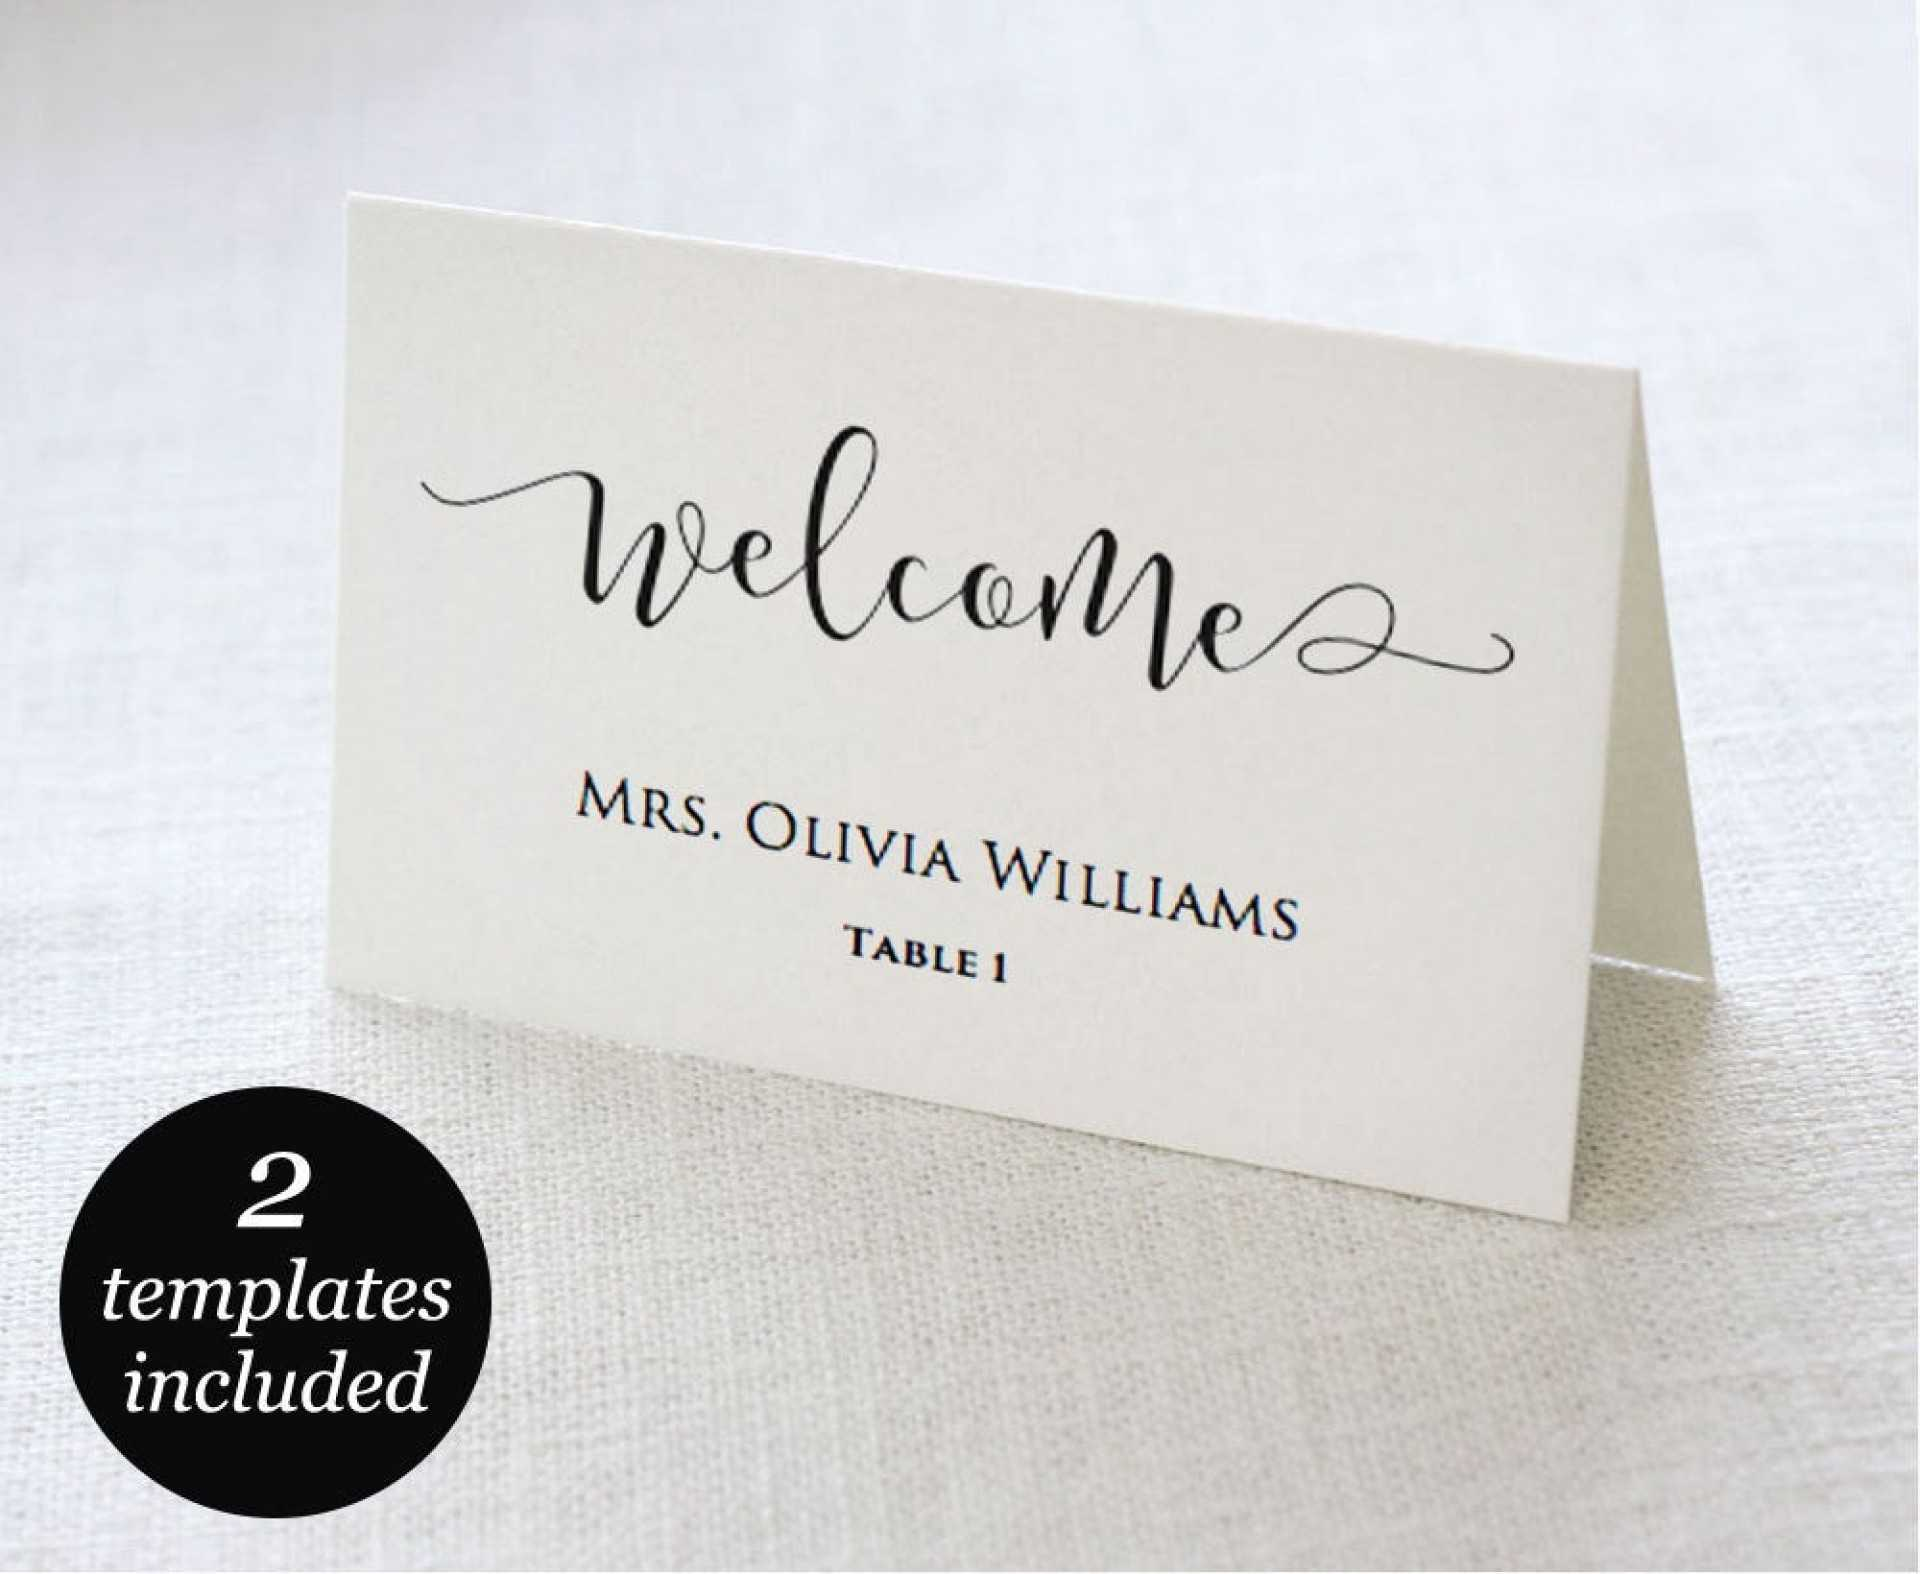 023 Template Ideas Card Printable Place Breathtaking Cards For Paper Source Templates Place Cards